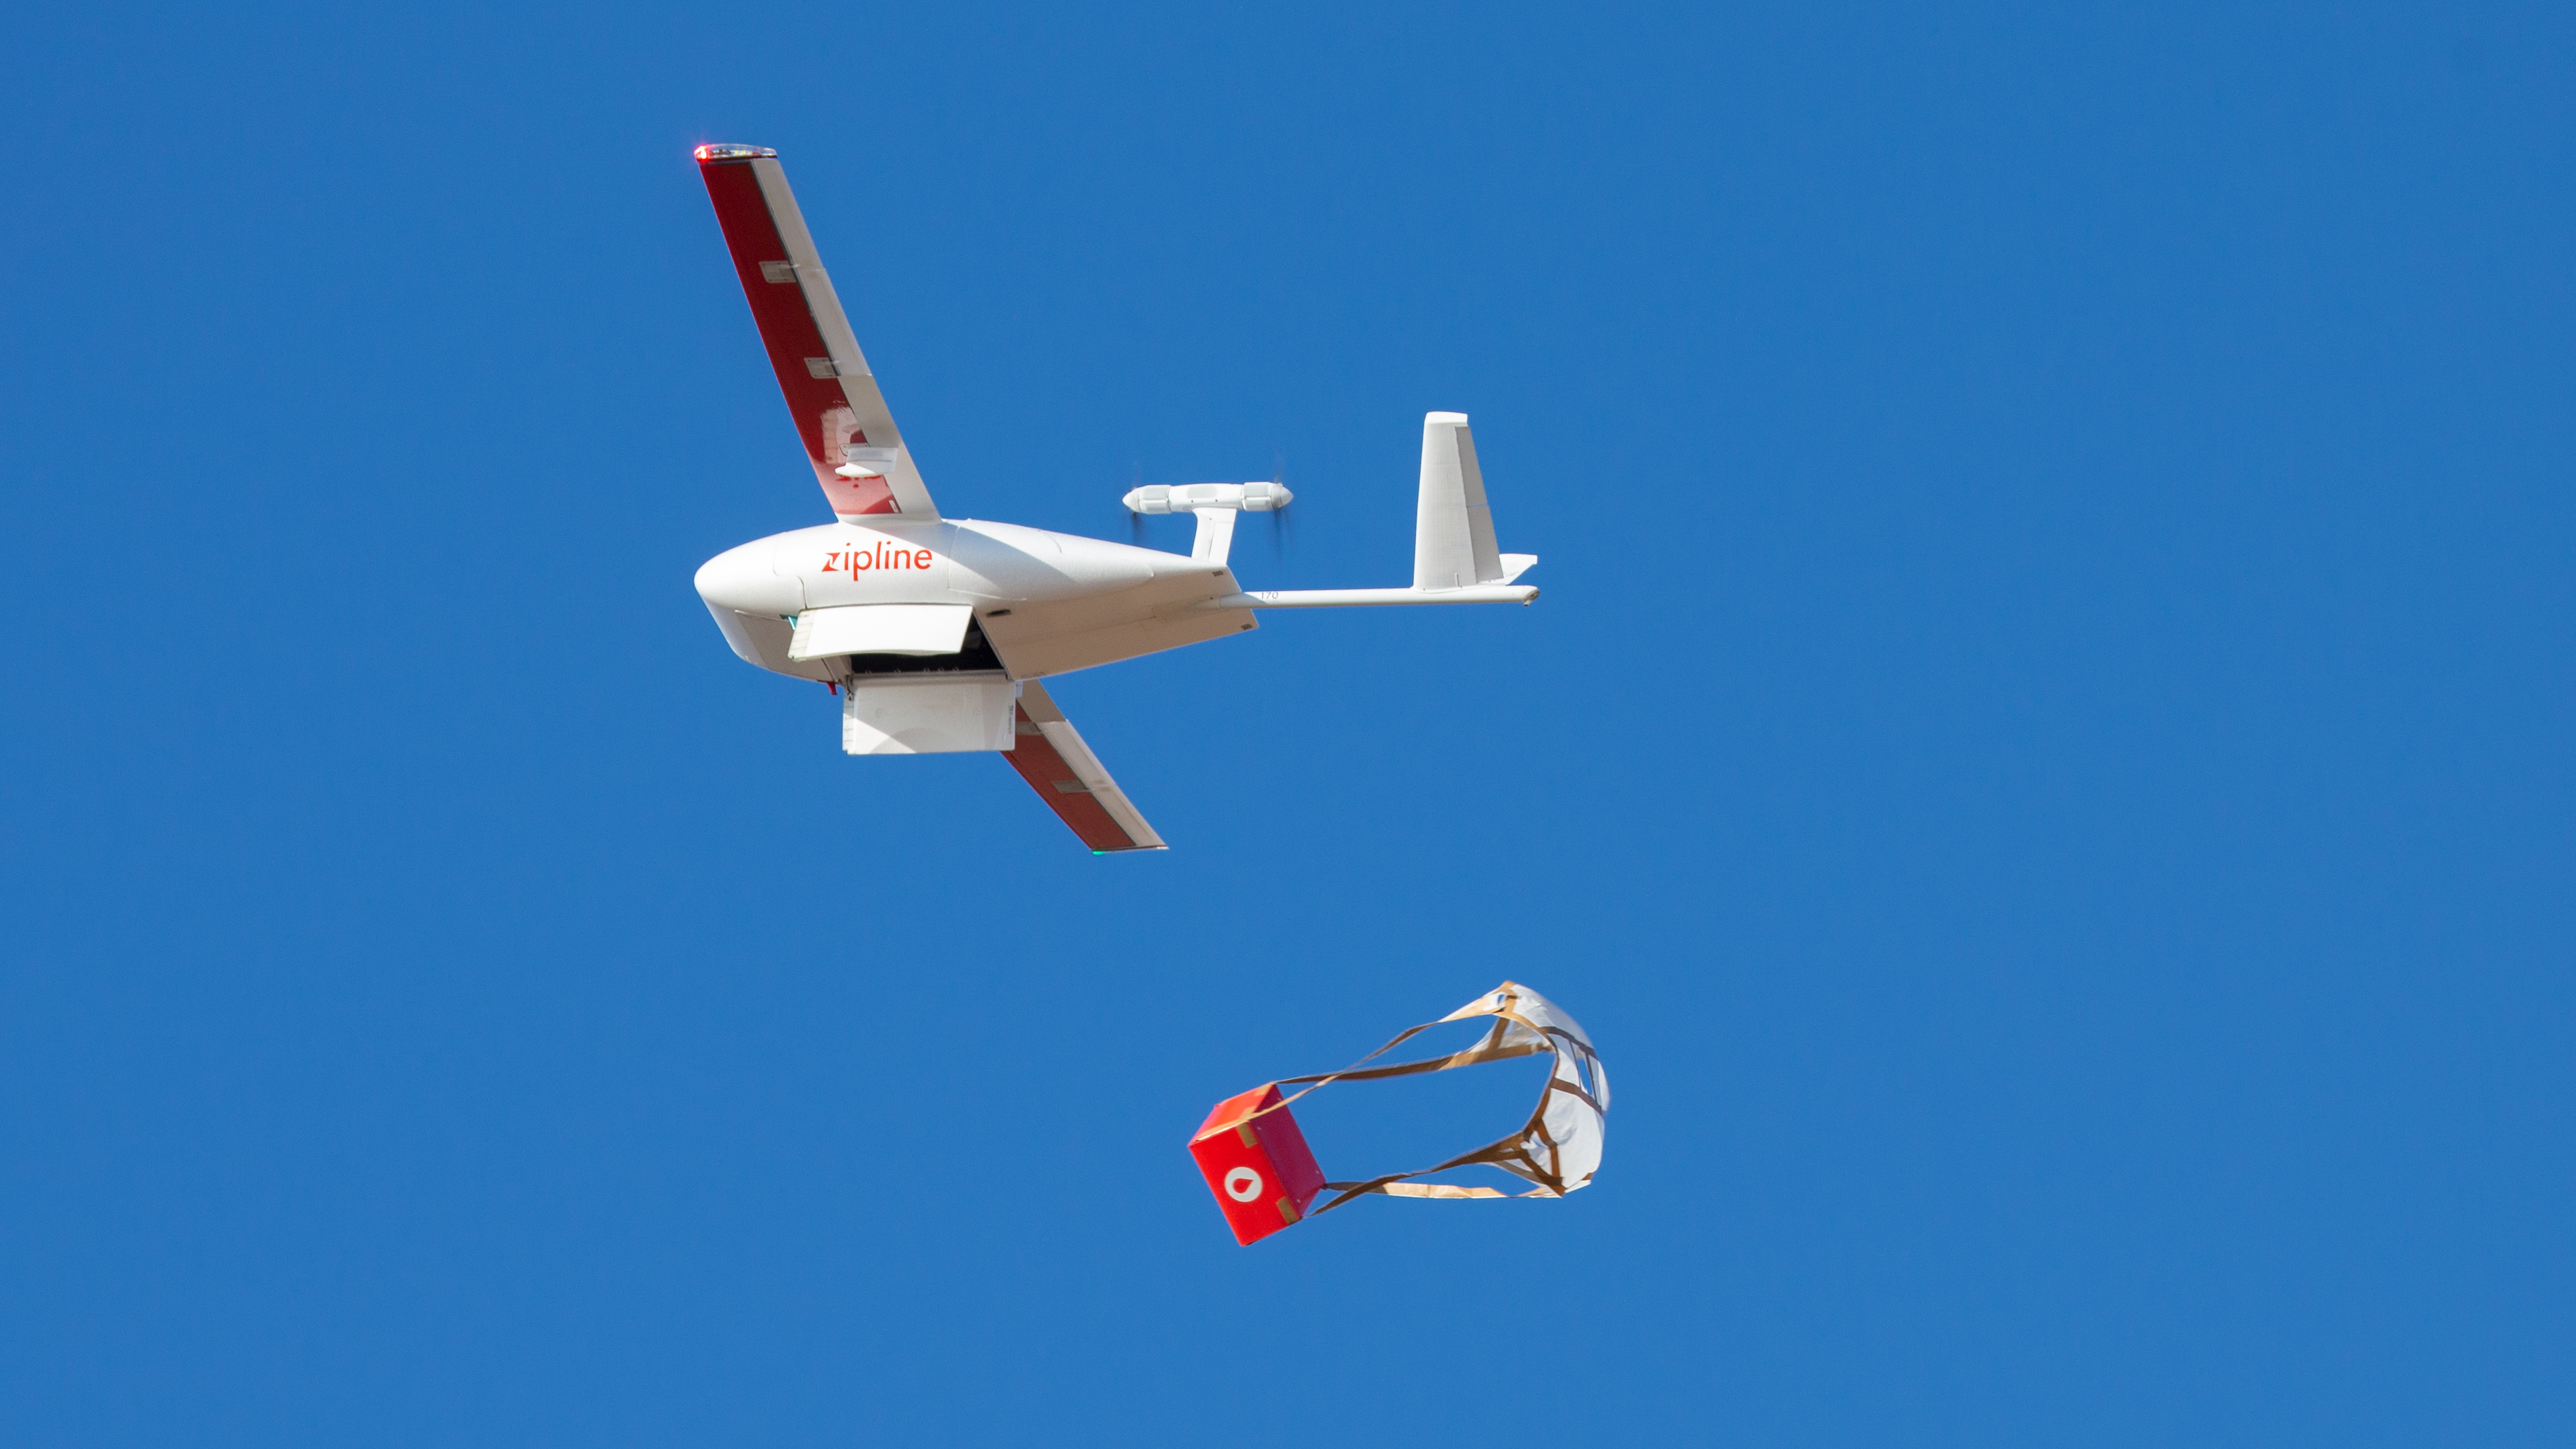 Zipline's drone delivery launches in Ghana with vaccines